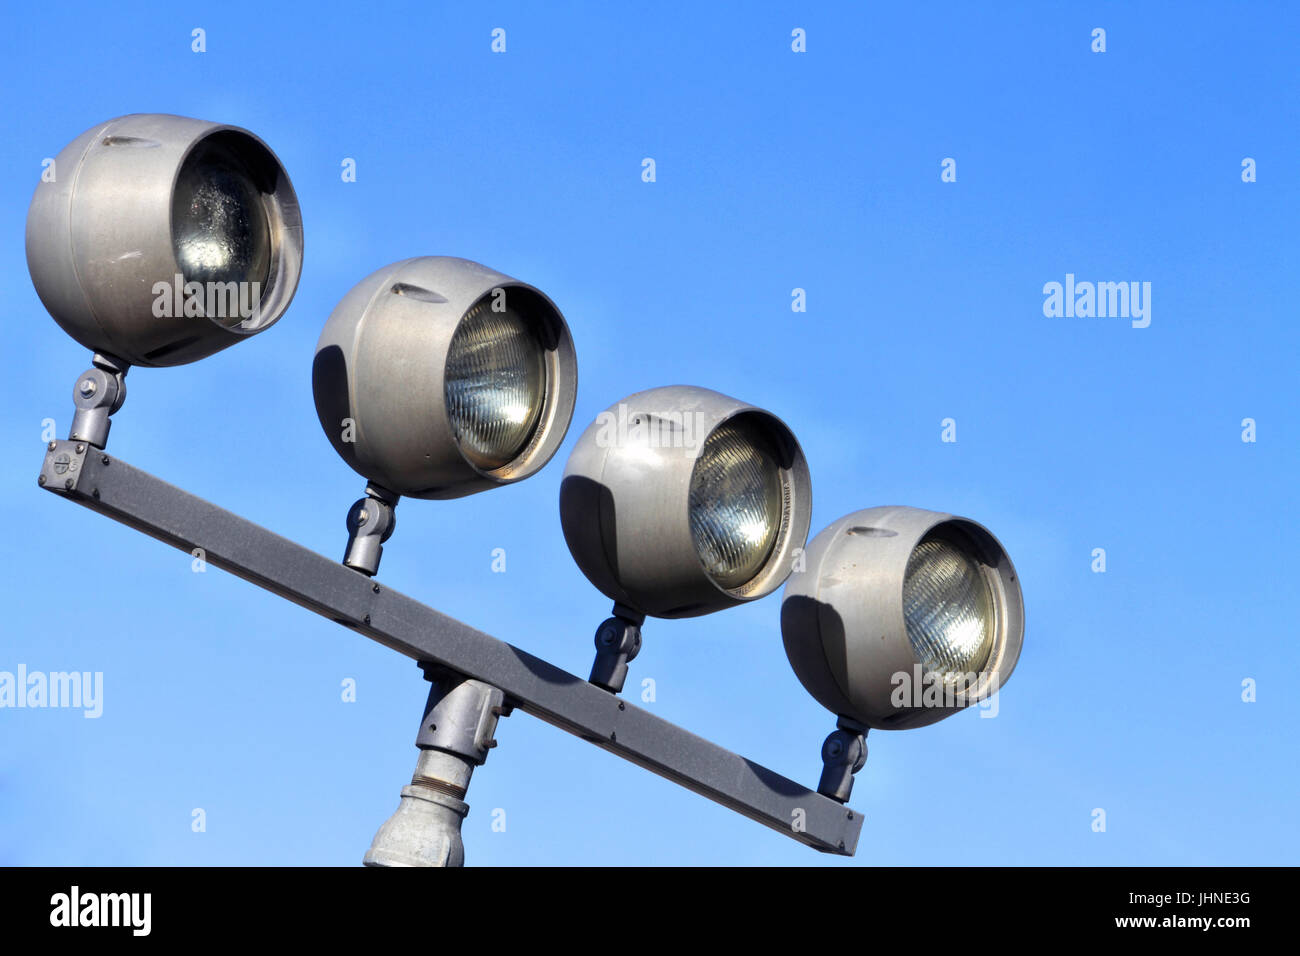 A row of four outdoor unlit metal spotlights on a stand. - Stock Image